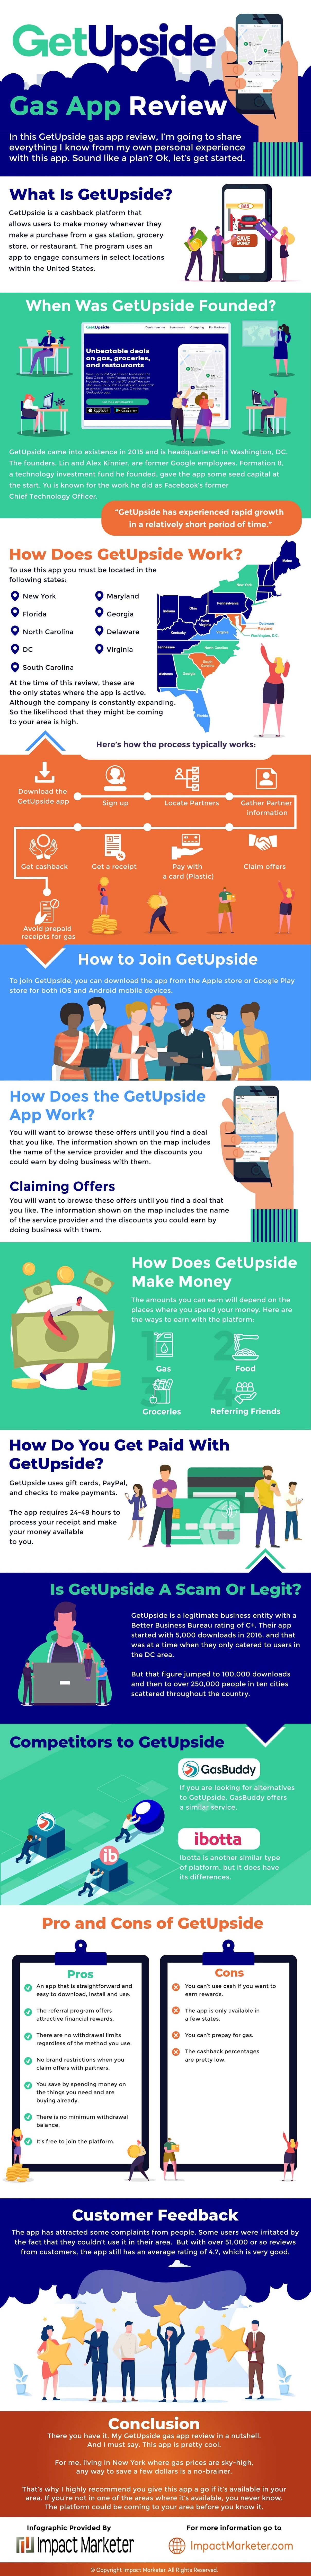 Get Upside Gas App Review: How Does Get Upside Make You Money? #infographic